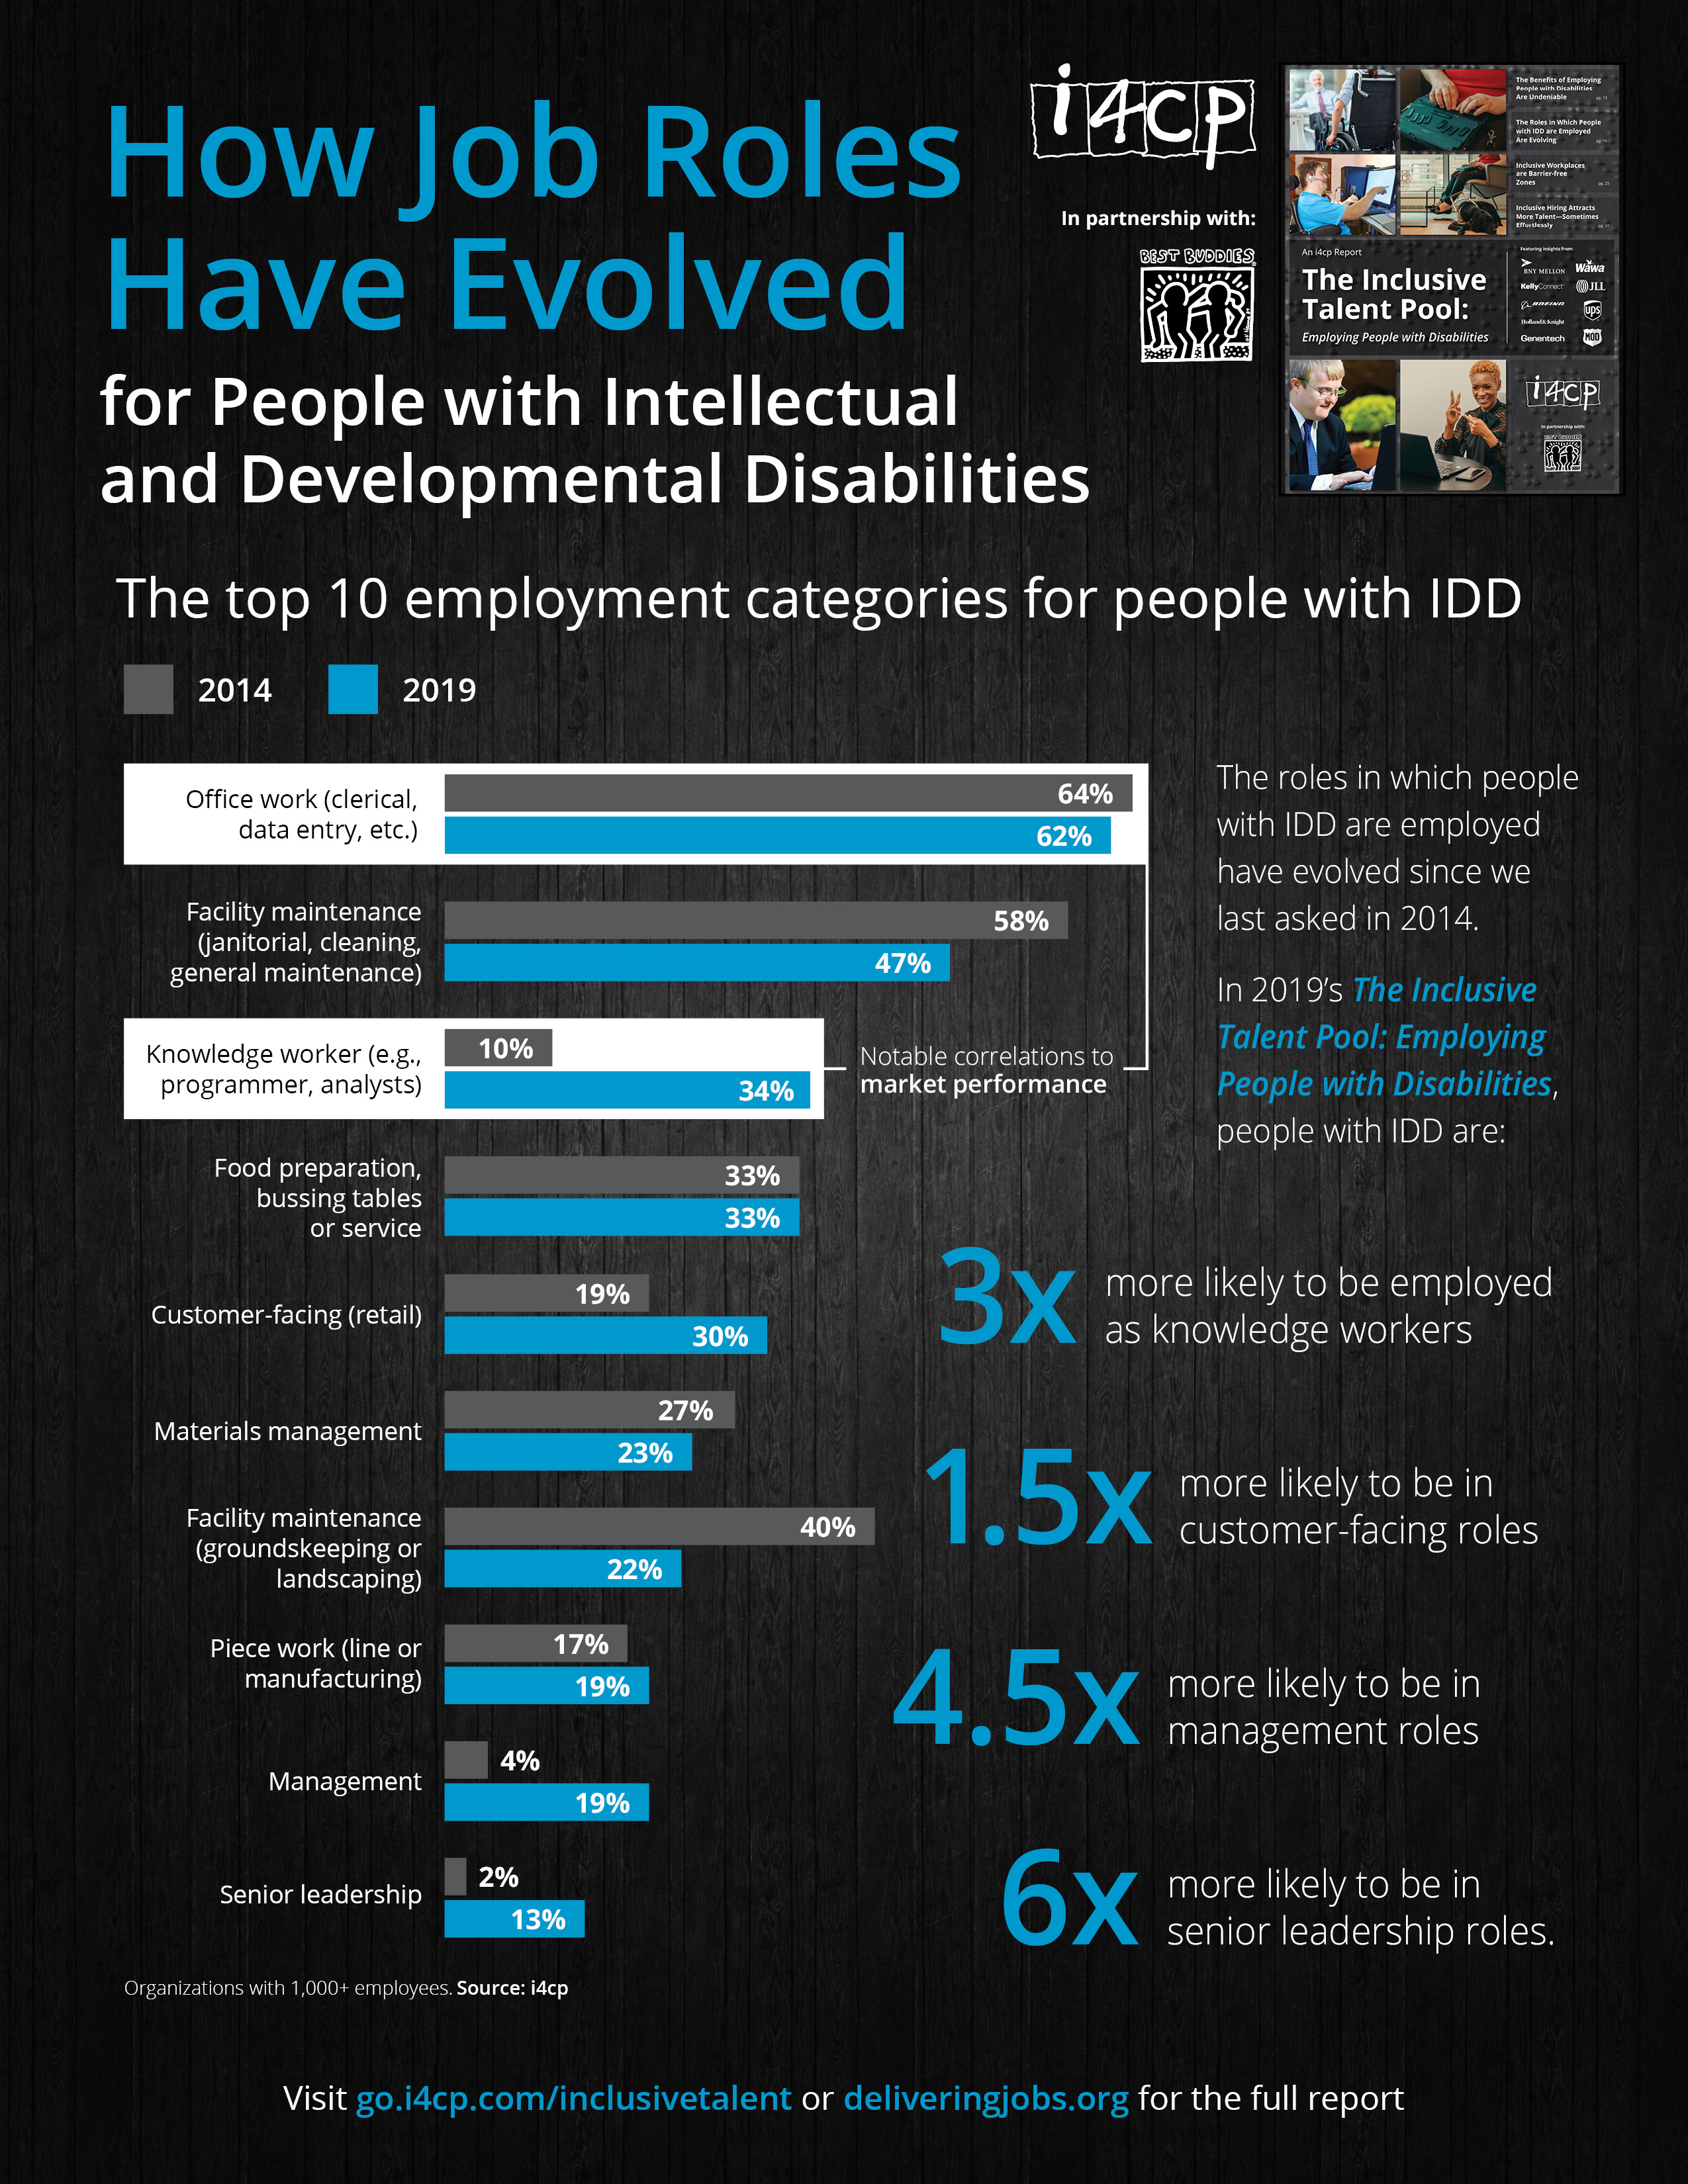 How Job Roles Have Evolved for People with IDD